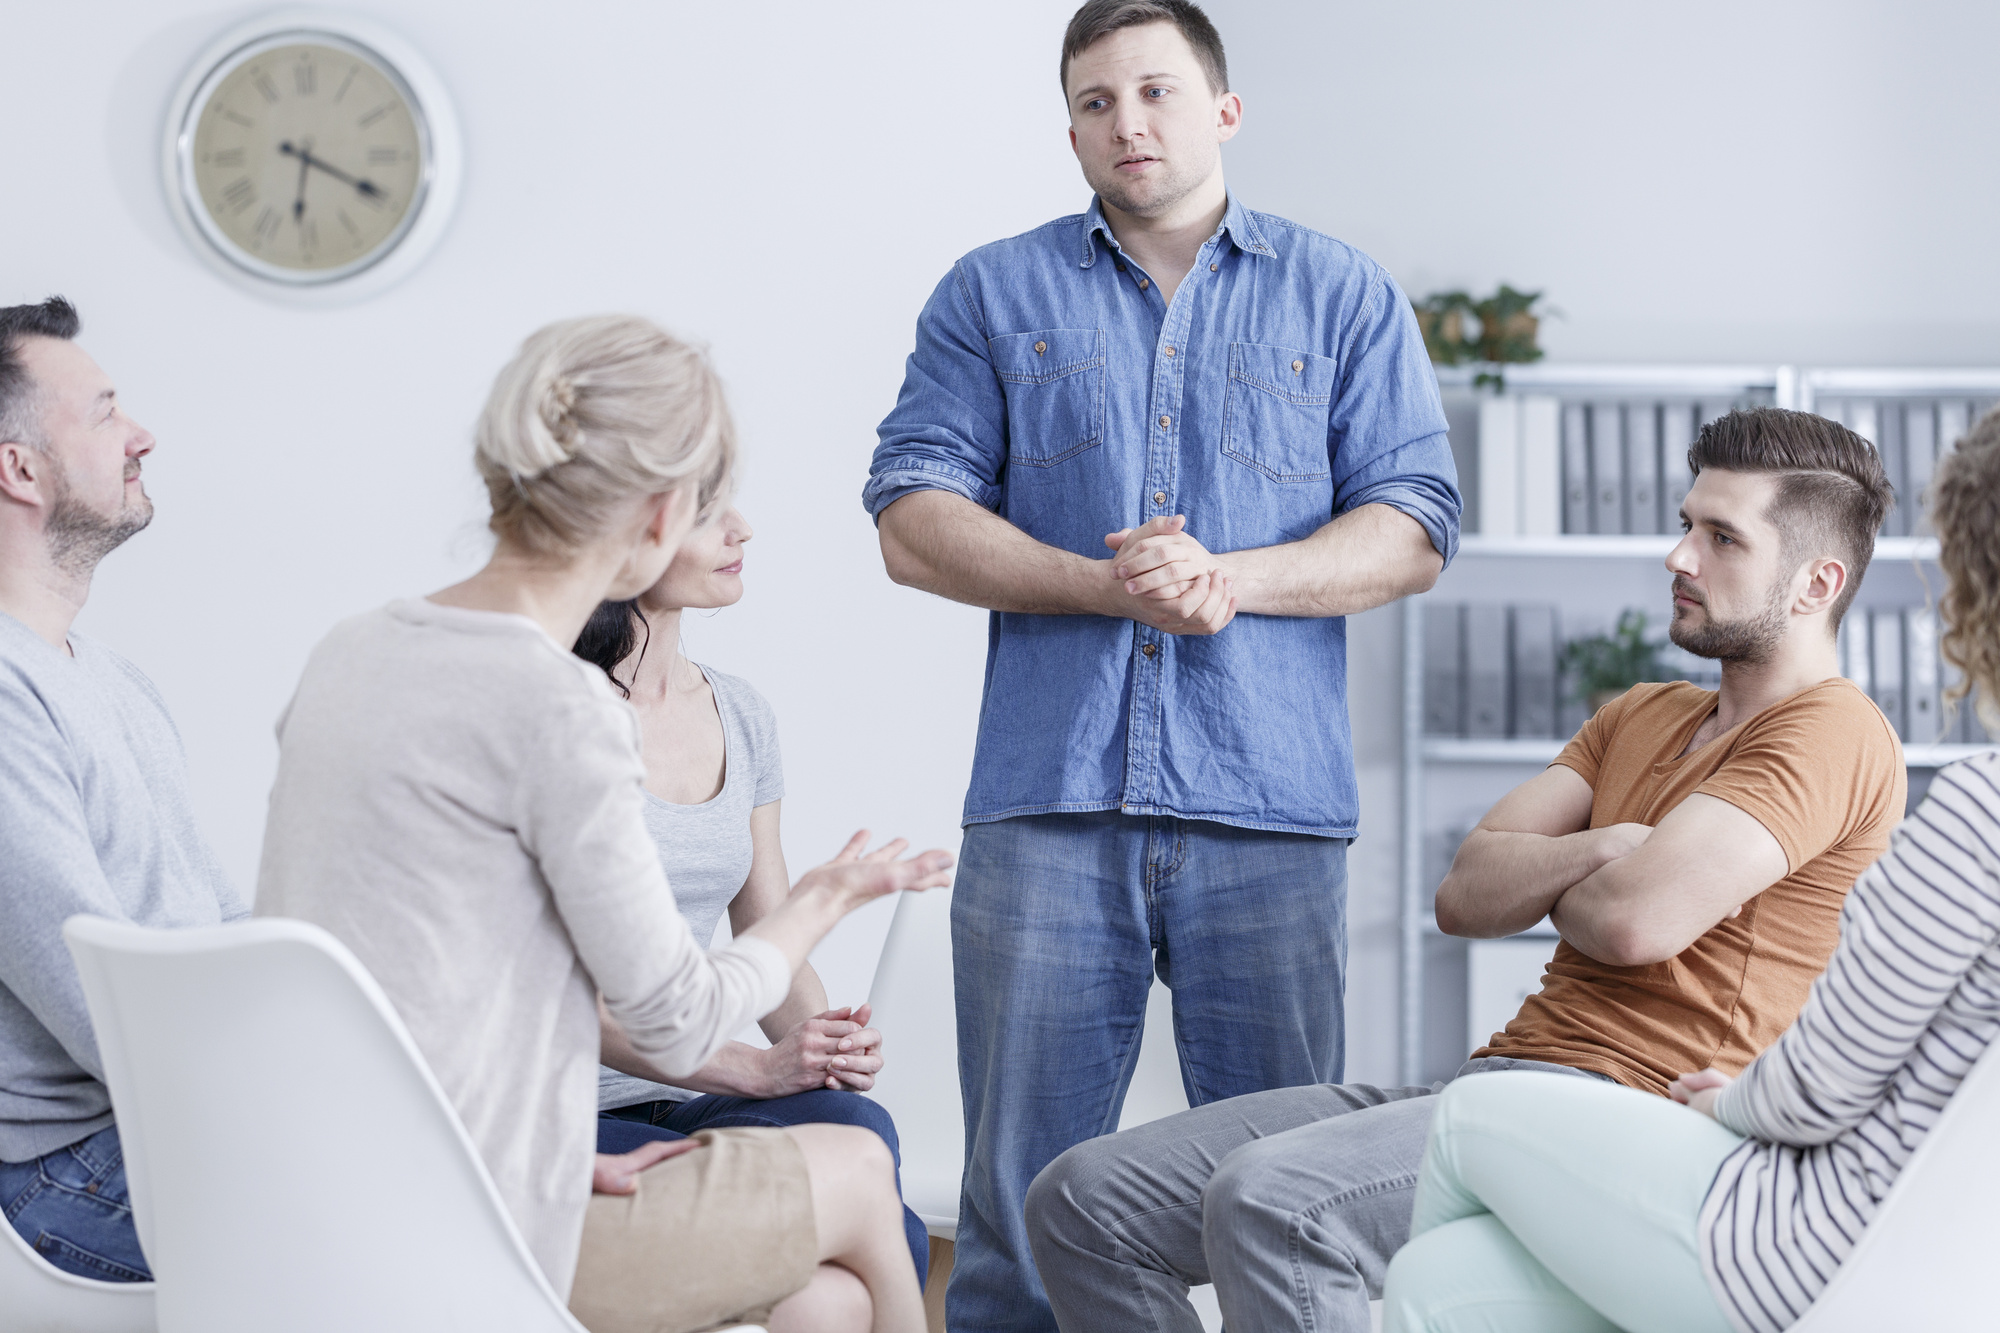 5 Tips to Hold a Successful Intervention for a Loved One